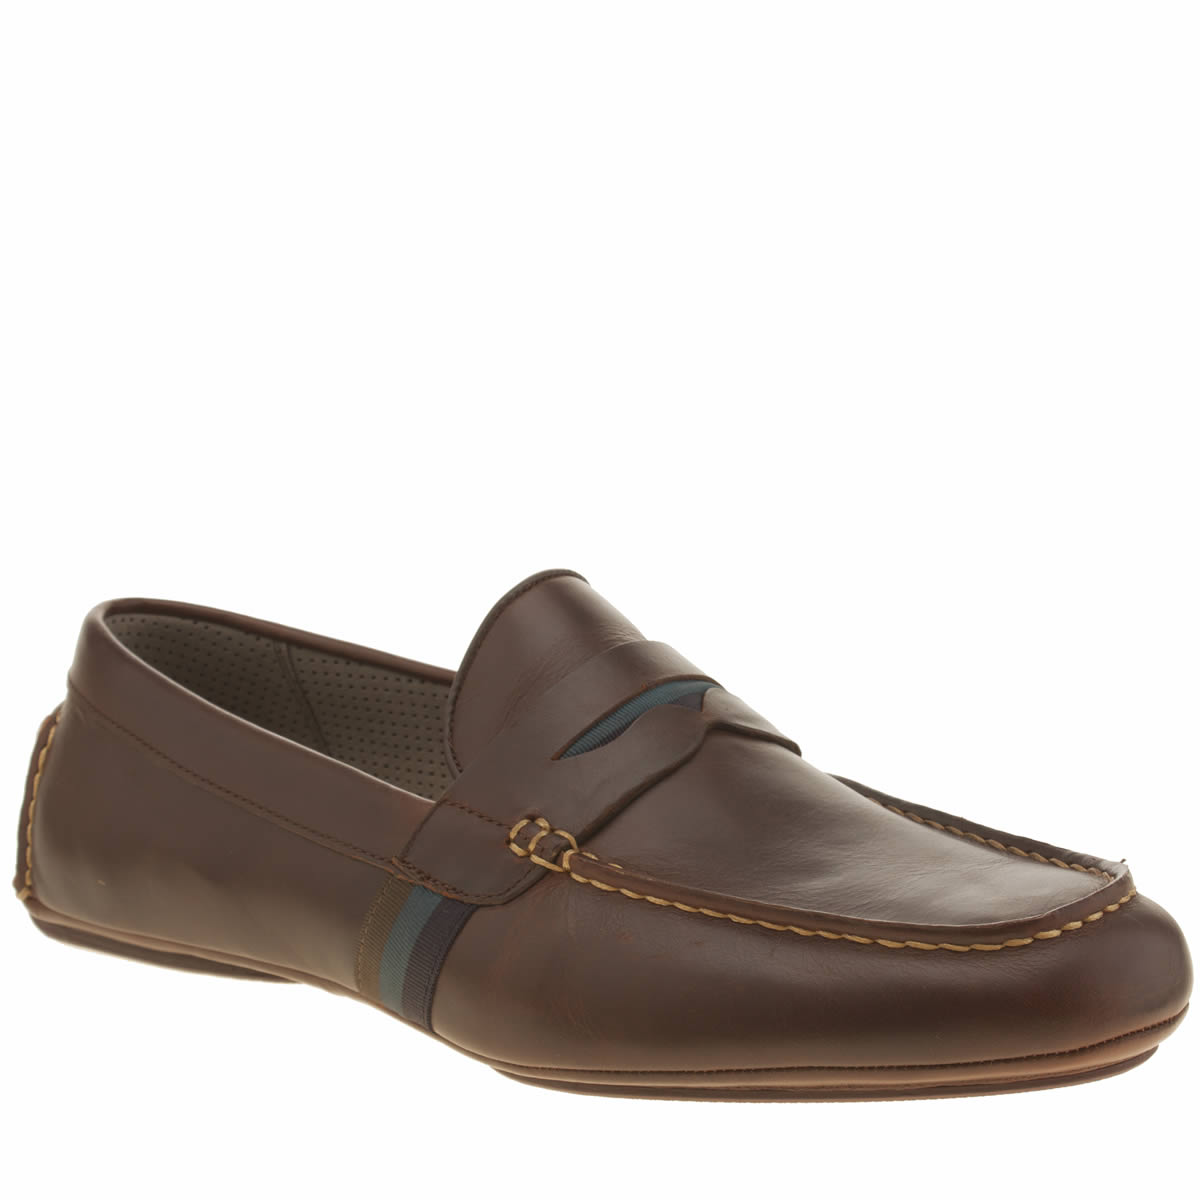 Paul Smith Shoes Paul Smith Shoes Brown Ride Mens Shoes